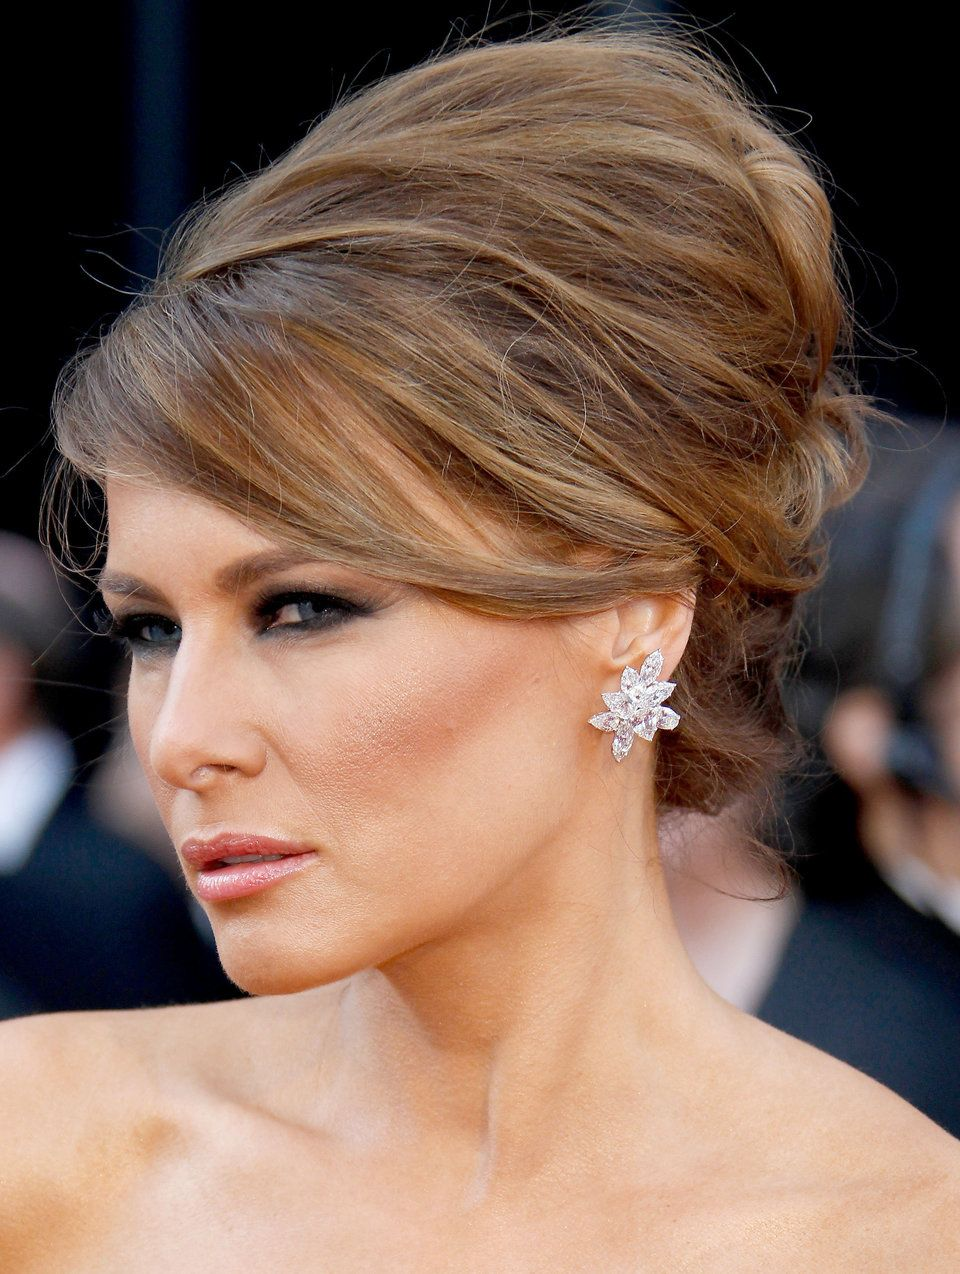 Melania Trump Has Nailed The Same Facial Expression In Every Photo For 17 Years Huffpost Life First Lady Melania Trump Trump Hair Melania Knauss Trump